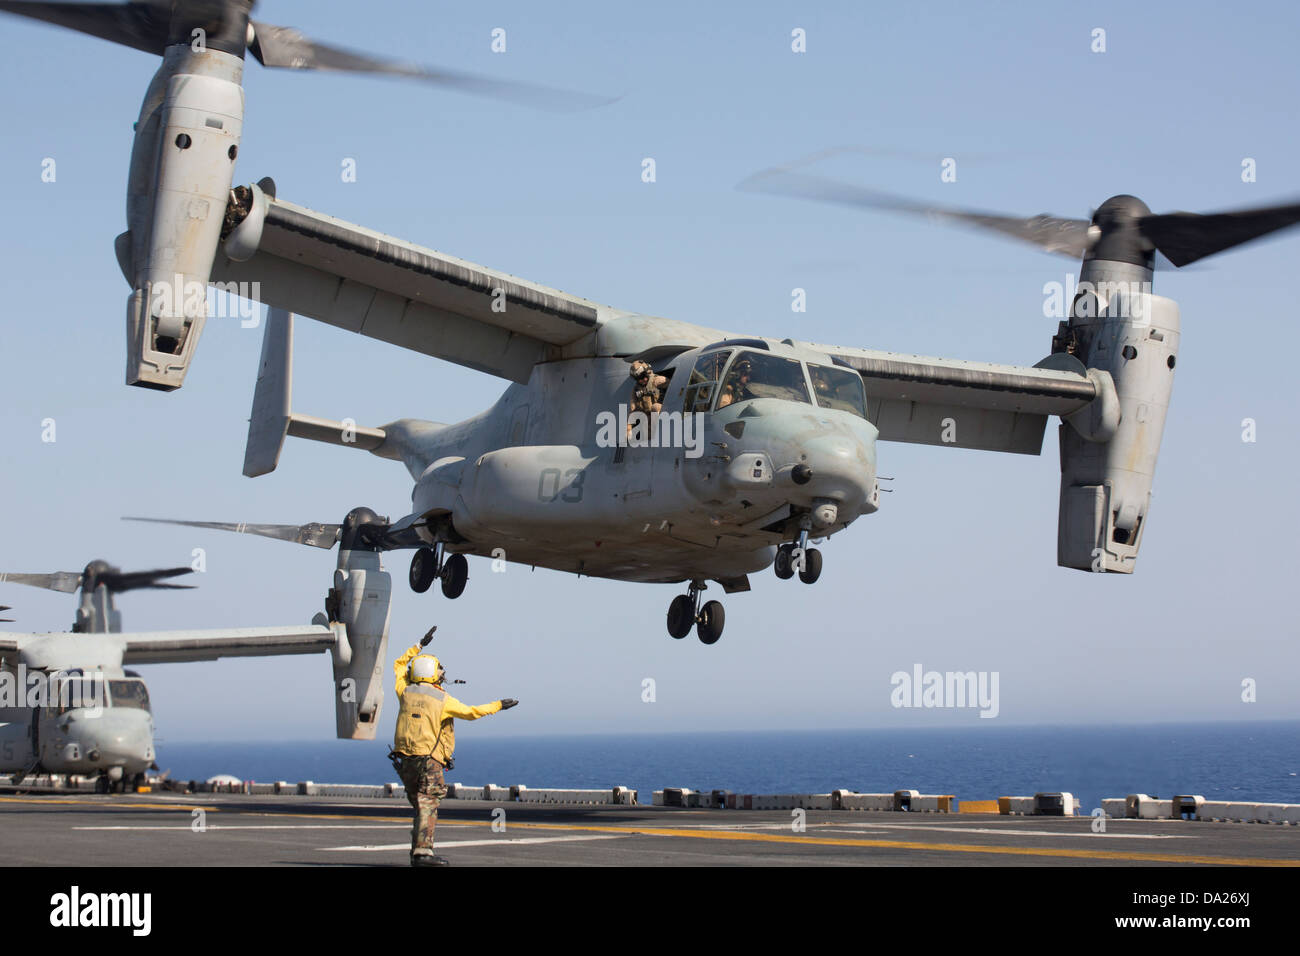 A US Marine Corps MV-22 Osprey aircraft takes off from the amphibious assault ship USS Kearsarge June 30, 2013 in - Stock Image